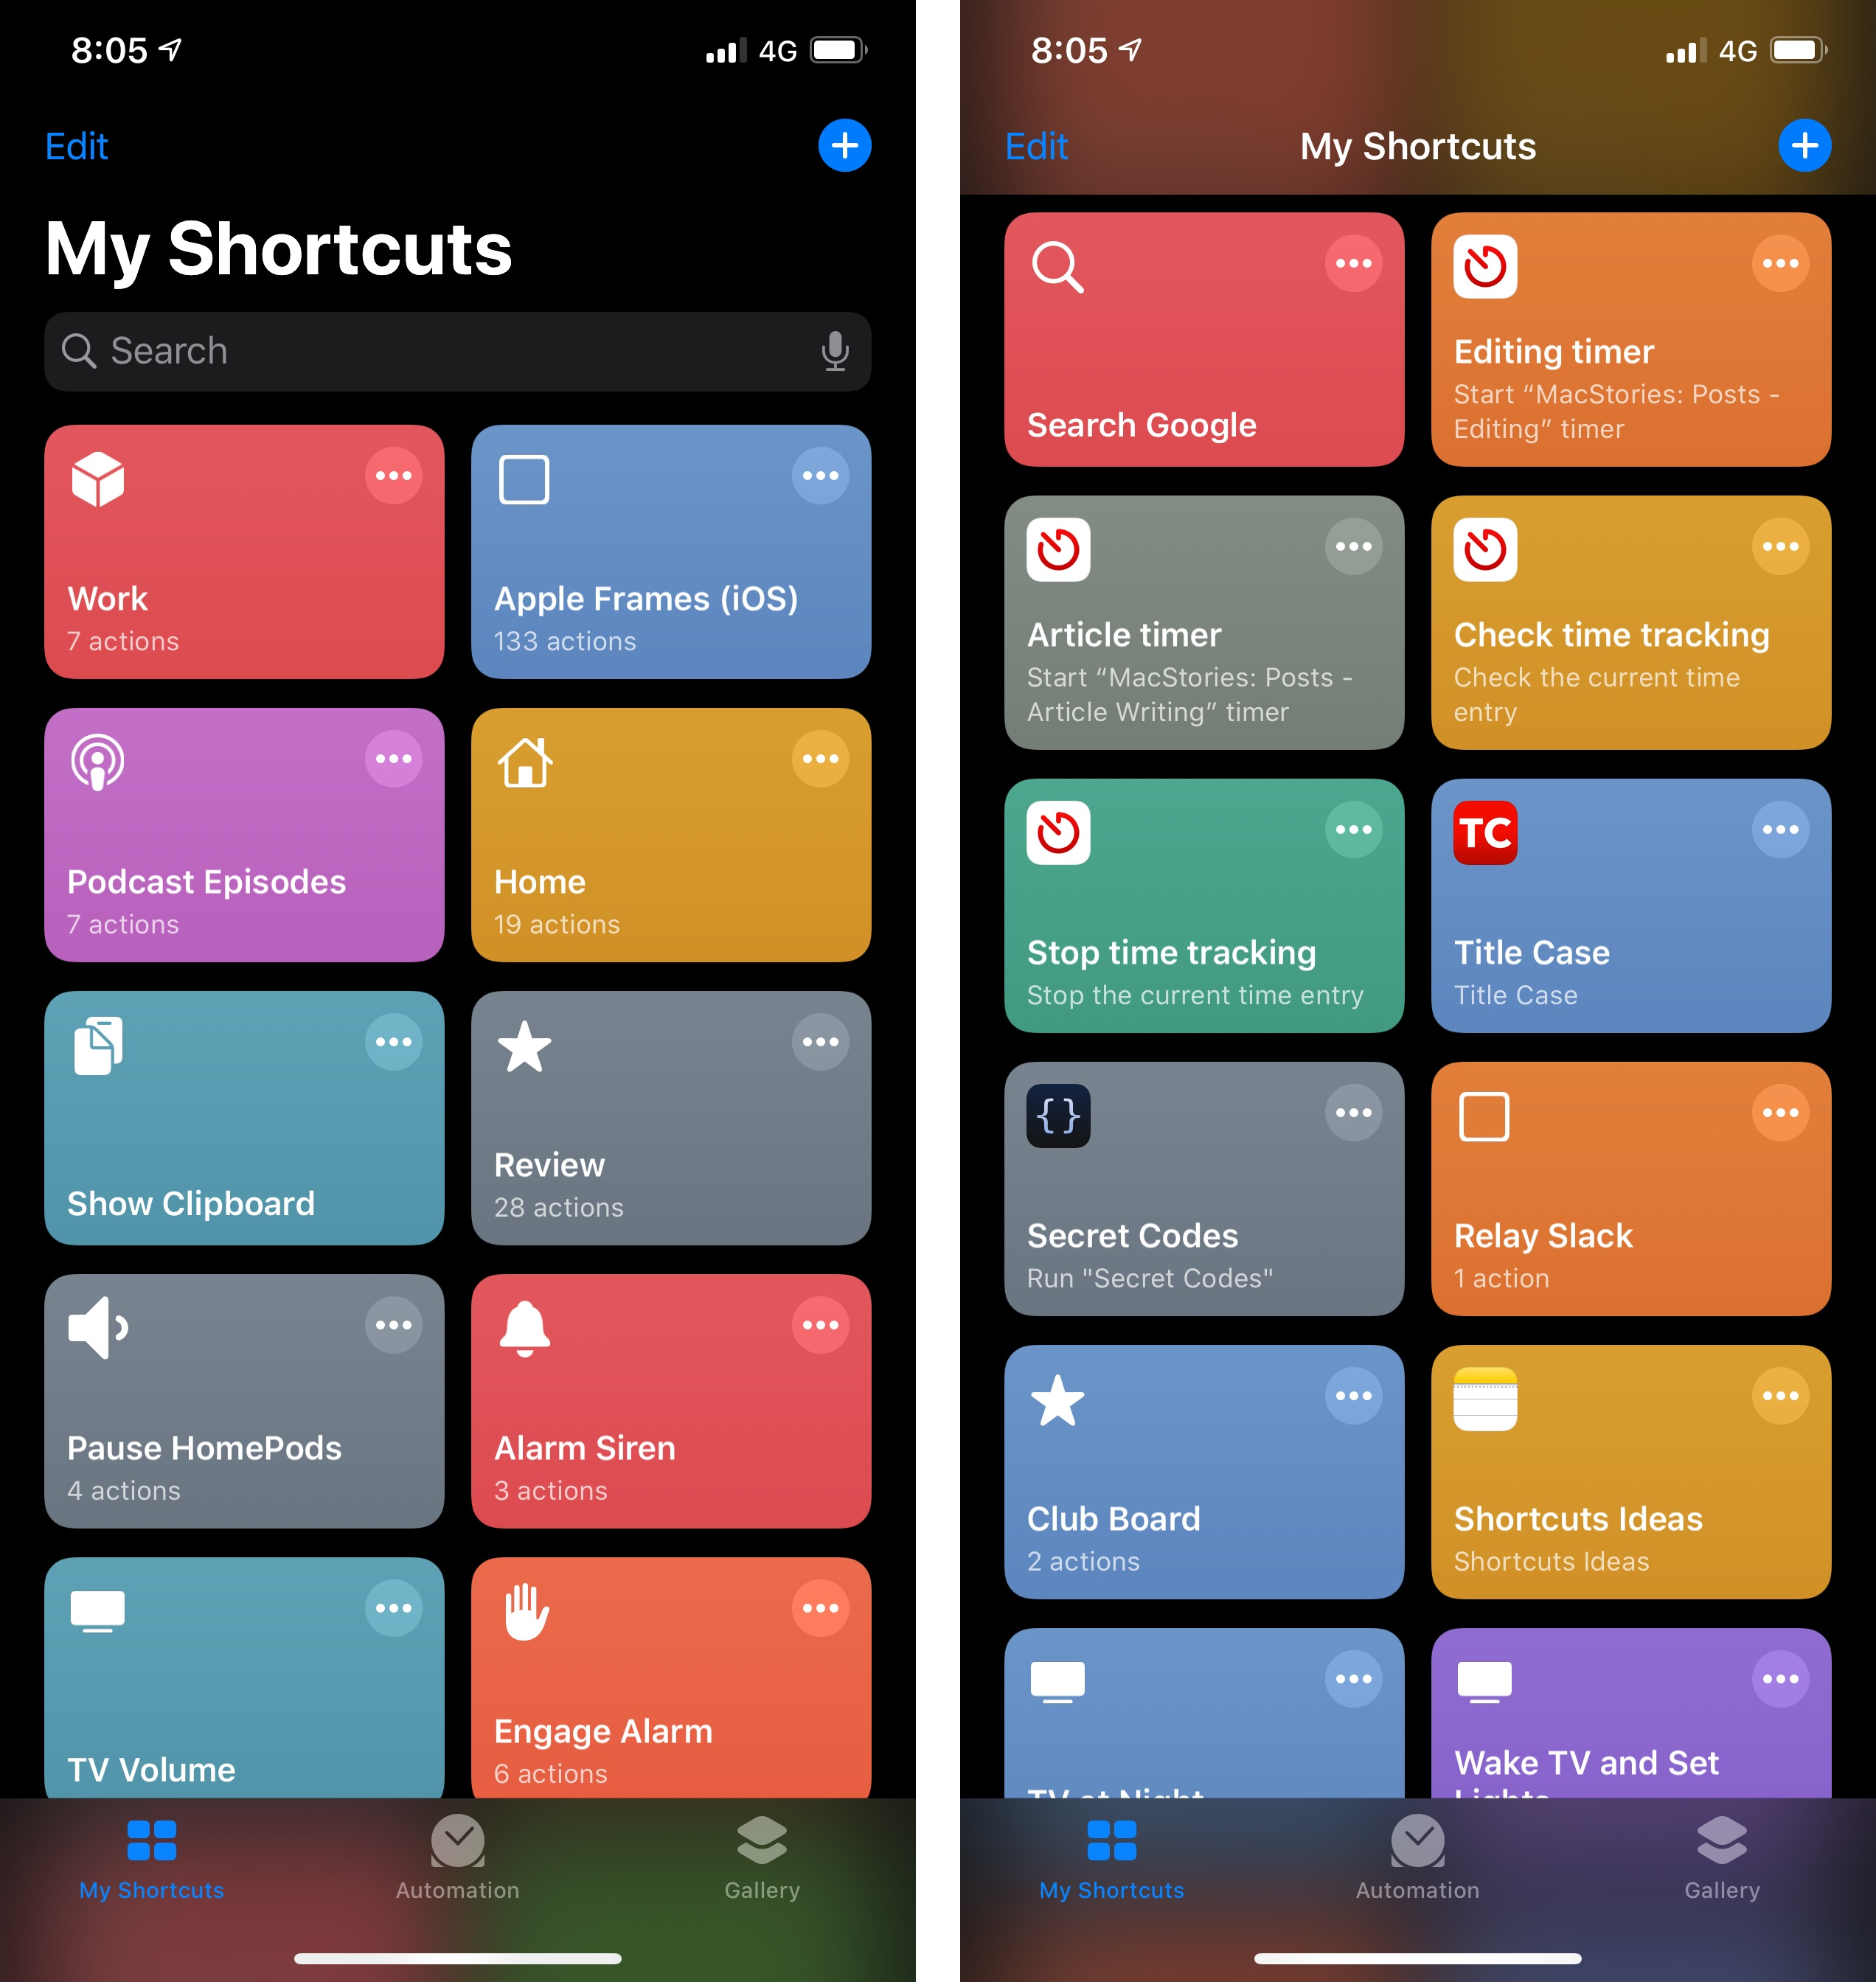 The shortcuts with app icons were imported from iOS 12.